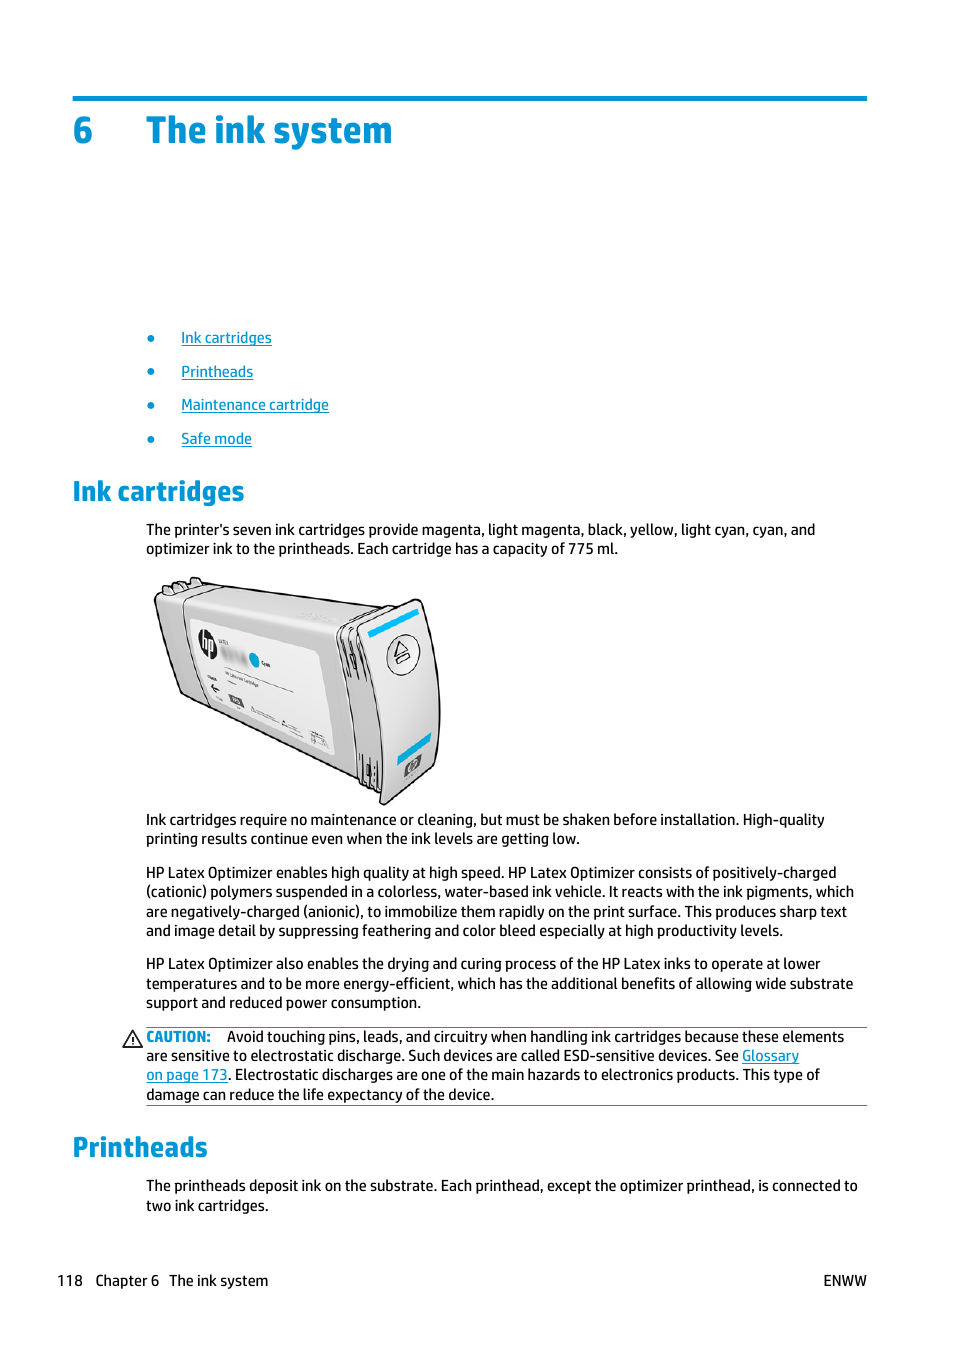 The ink system ink cartridges printheads hp latex 360 printer the ink system ink cartridges printheads hp latex 360 printer user manual page 124 184 ccuart Gallery